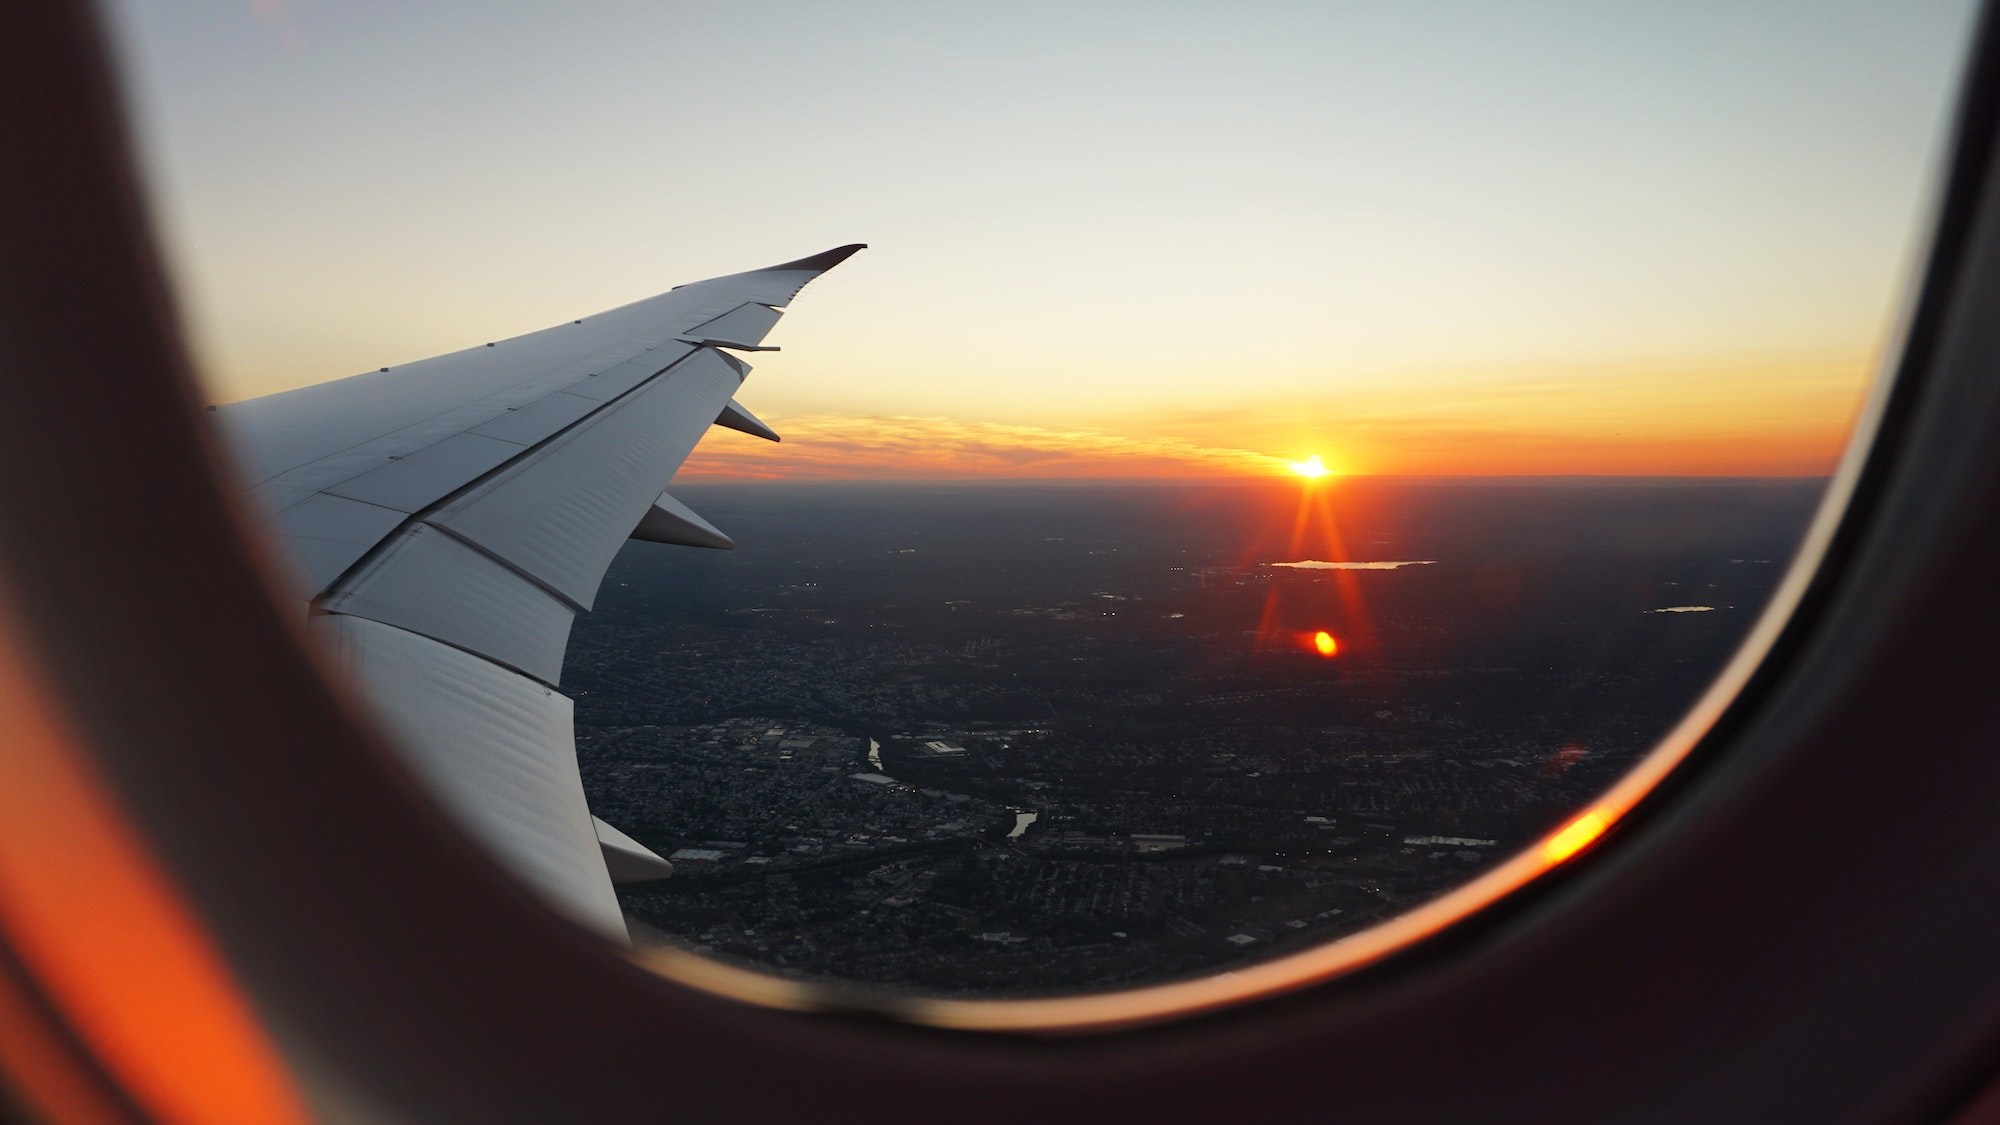 Photo of a sunset from a plane window